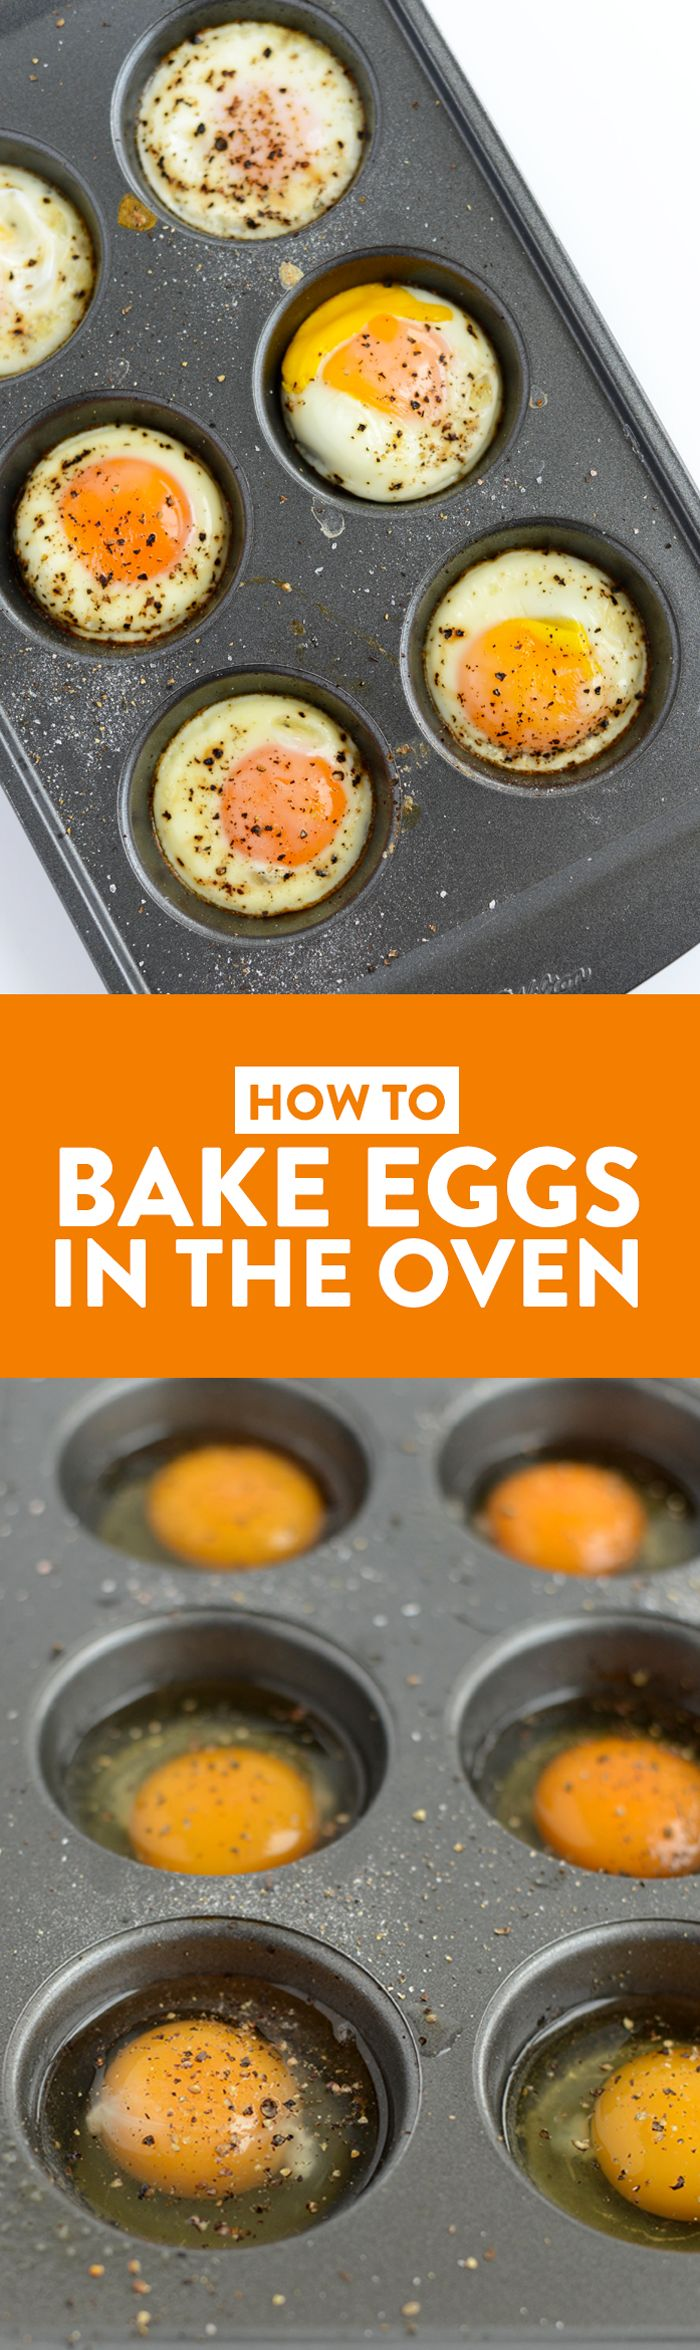 Follow this guide for how to bake eggs in the oven and you will have an easy-to-make, high-protein snack with all of the hard-boiled egg goodness minus the hassle of peeling off that stubborn shell. You can eat it at home or on the go, hot or cold. Ya really can't go wrong with learning how to bake eggs in the oven, it's total game changer!